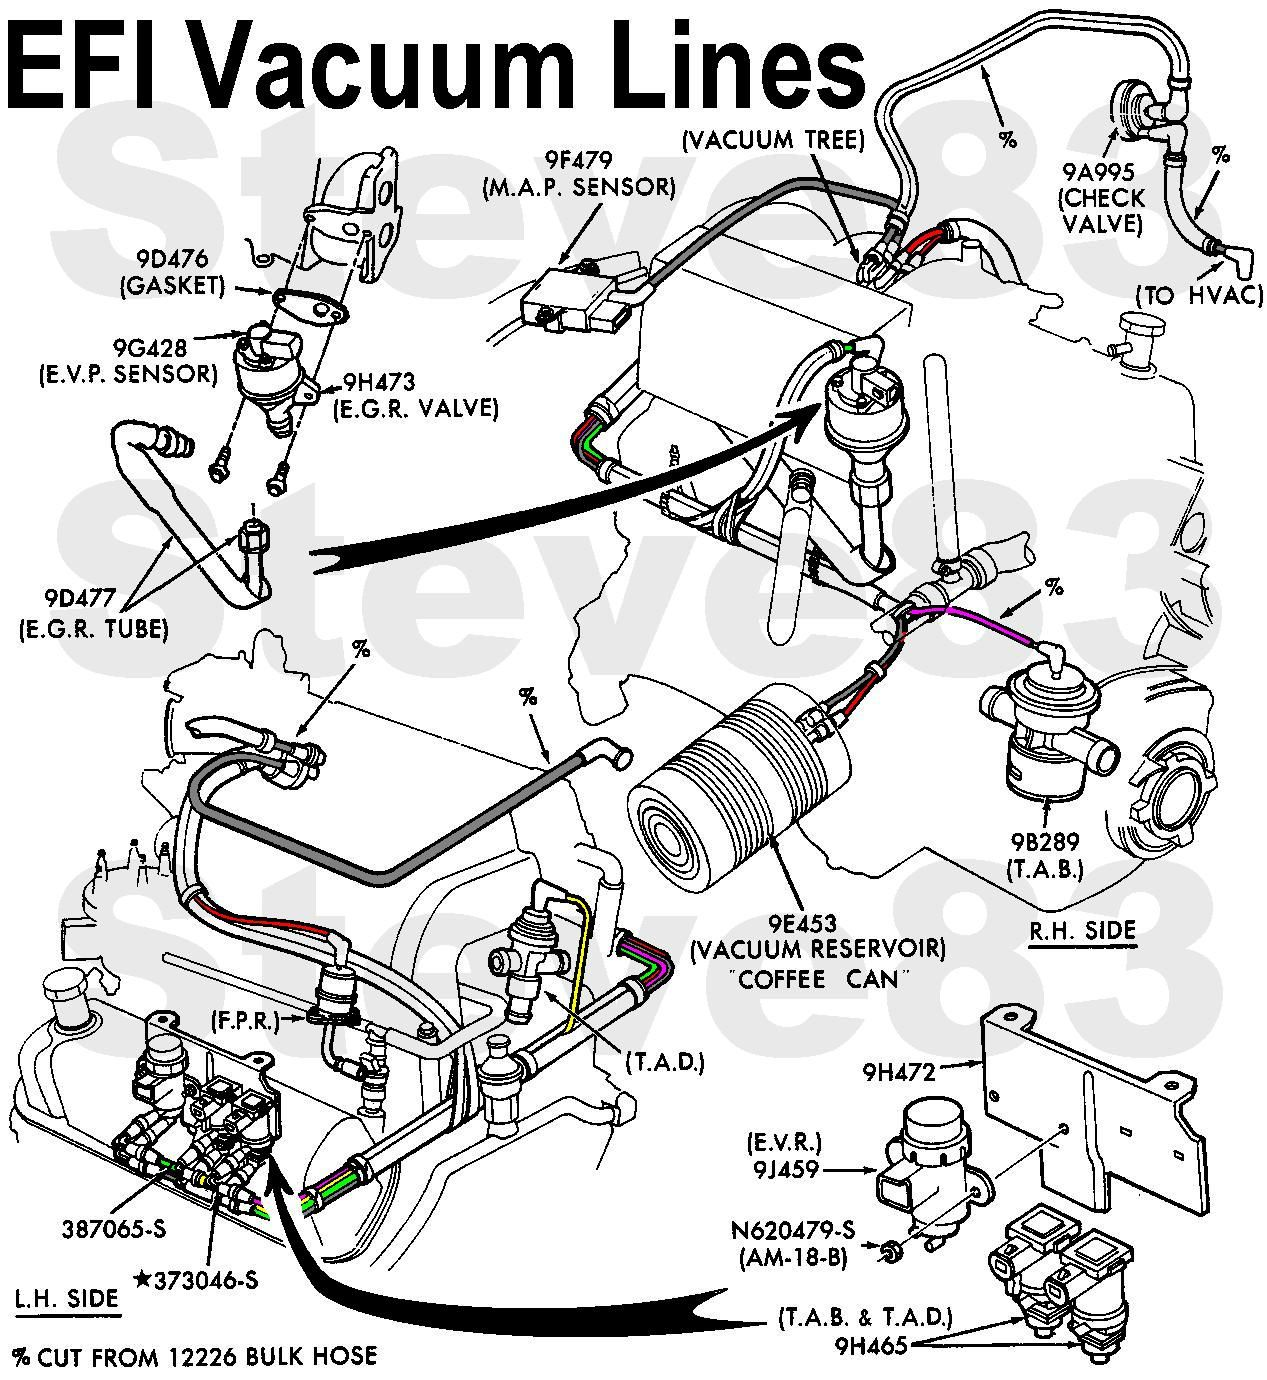 small resolution of engine bay schematic showing major electrical ground points for 4 0l jeep cherokee engines jeep jeep jeep cherokee 2001 jeep cherokee